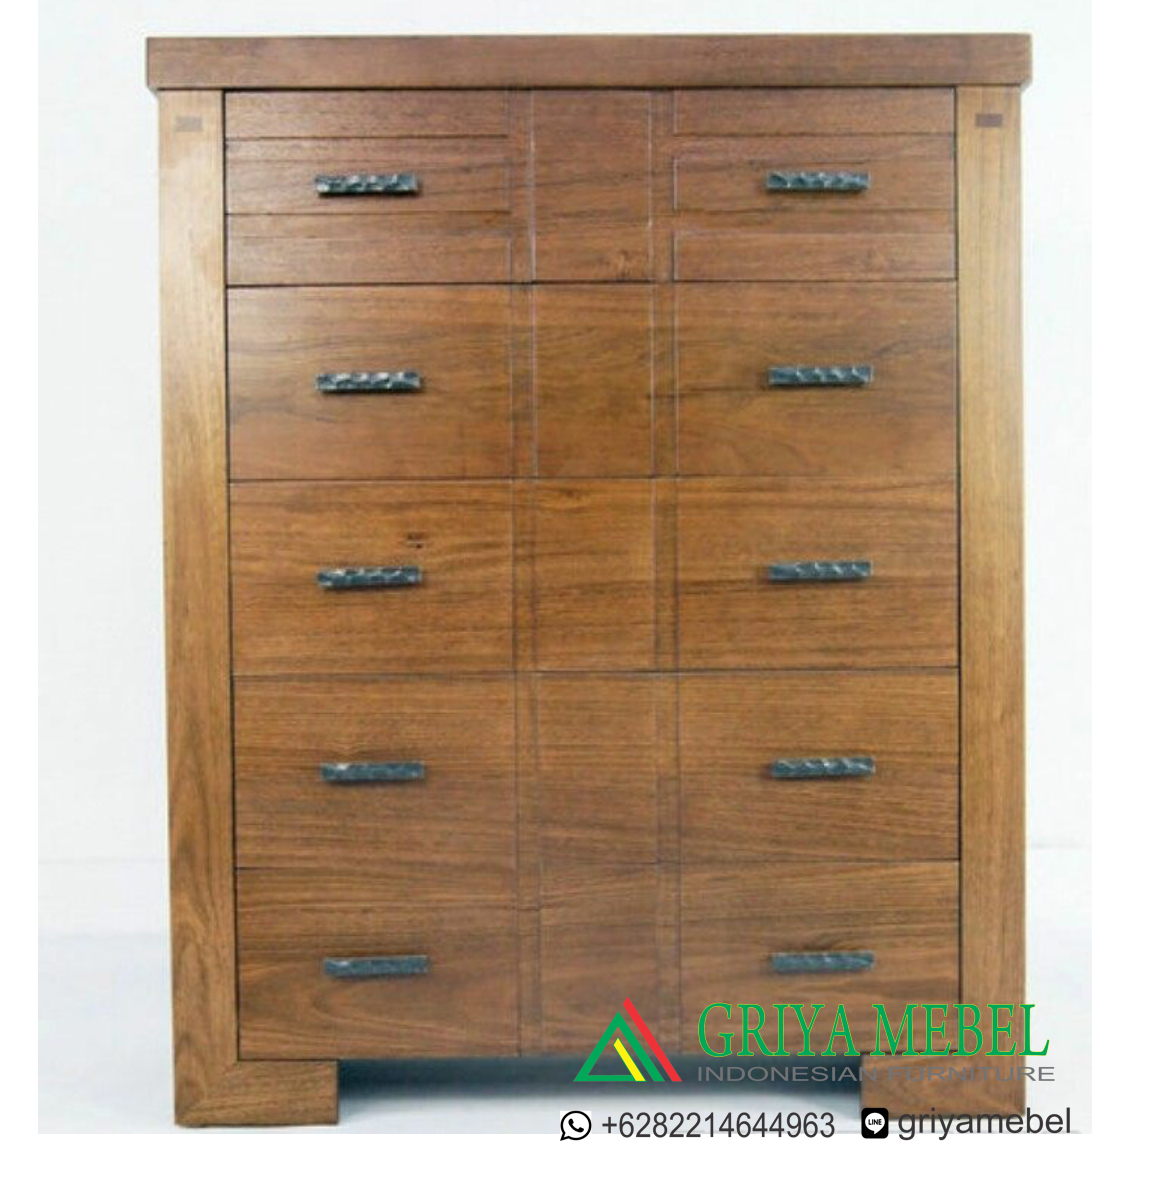 Buffet Minimalis Jati, buffet jati, buffet murah, furniture minimalis, furniture jati, furniture modern, mebel jati, meubel jati, furniture murah